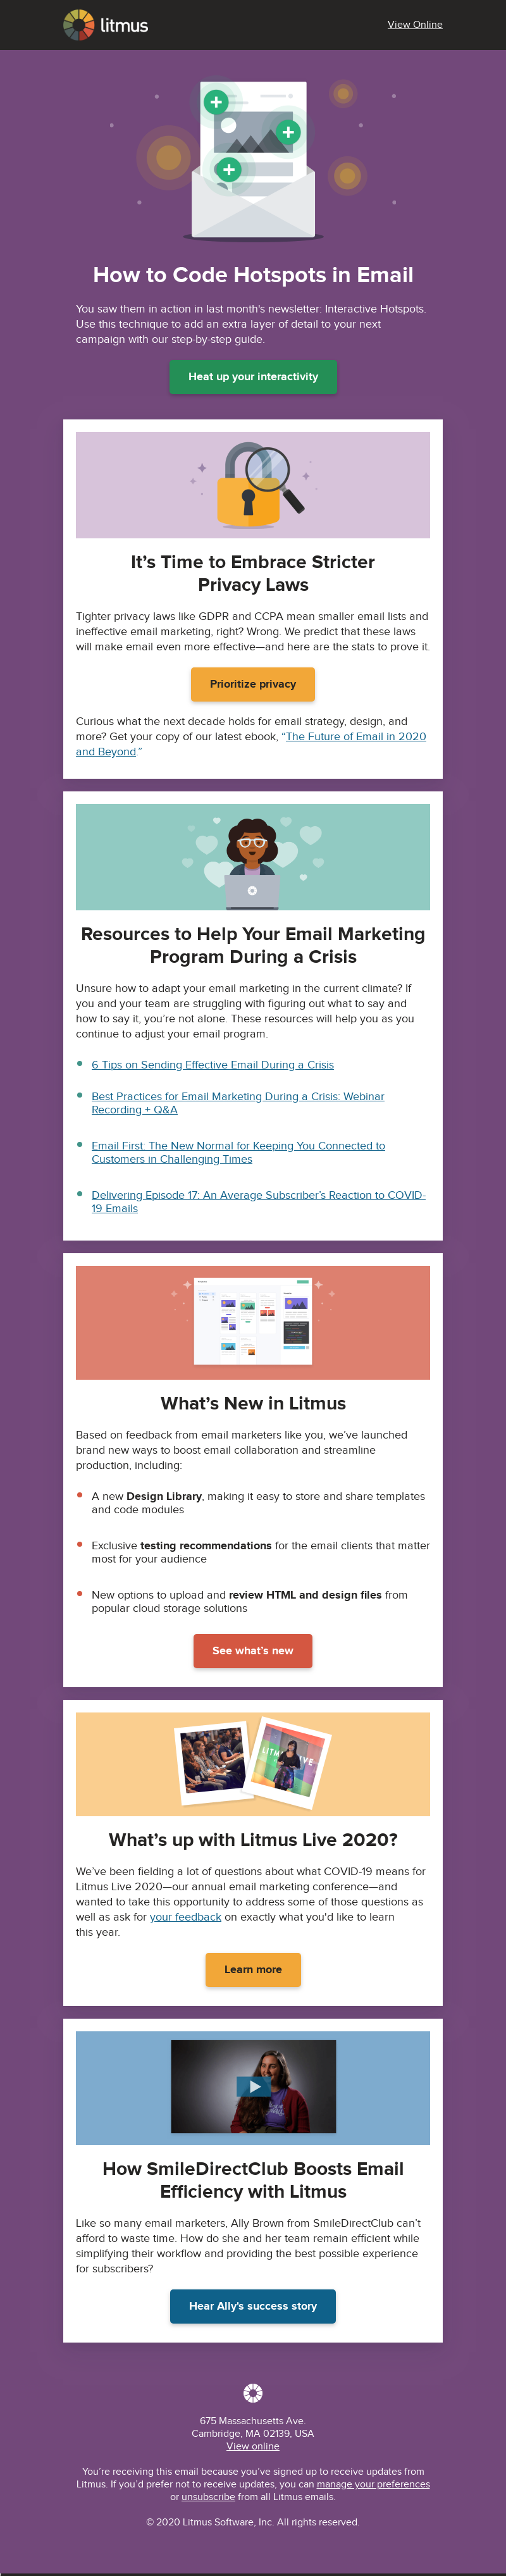 Litmus How to Code Hotspots in Email You saw them in action in last month's